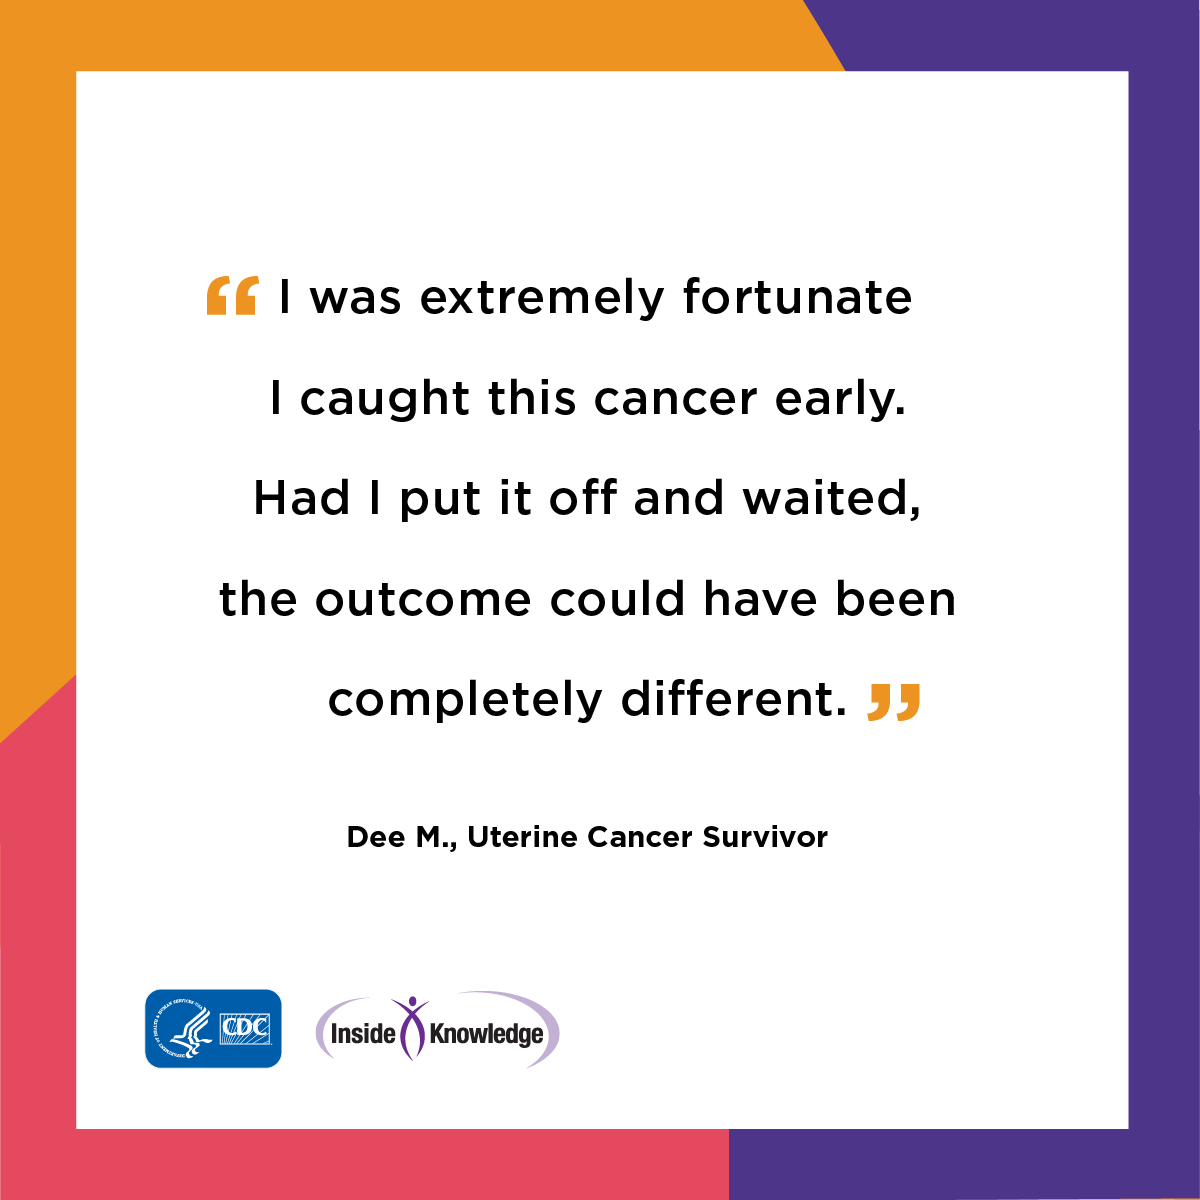 I was extremely fortunate I caught this cancer early. Had I put it off and waited, the outcome could have been completely different. Dee M., Uterine Cancer Survivor